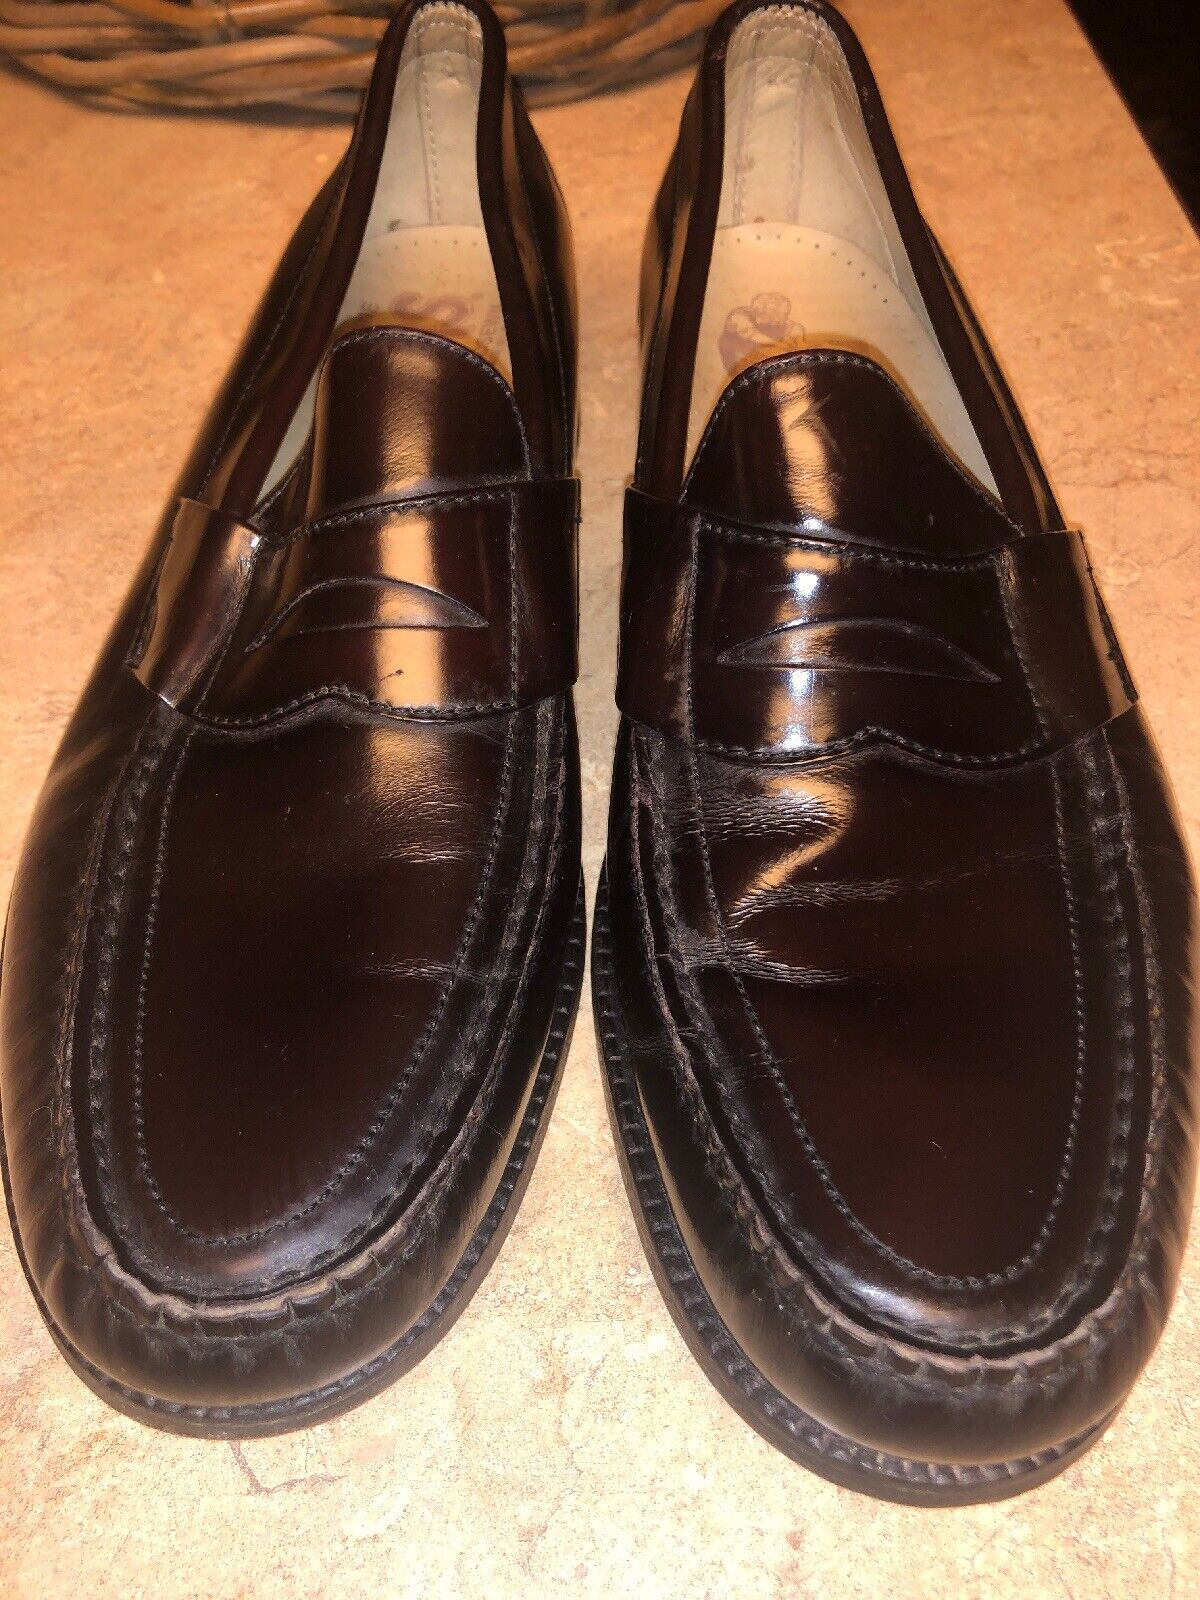 SAS San Antonio shoesmakers Mens Cordovan Leather Penny Loafers 10N